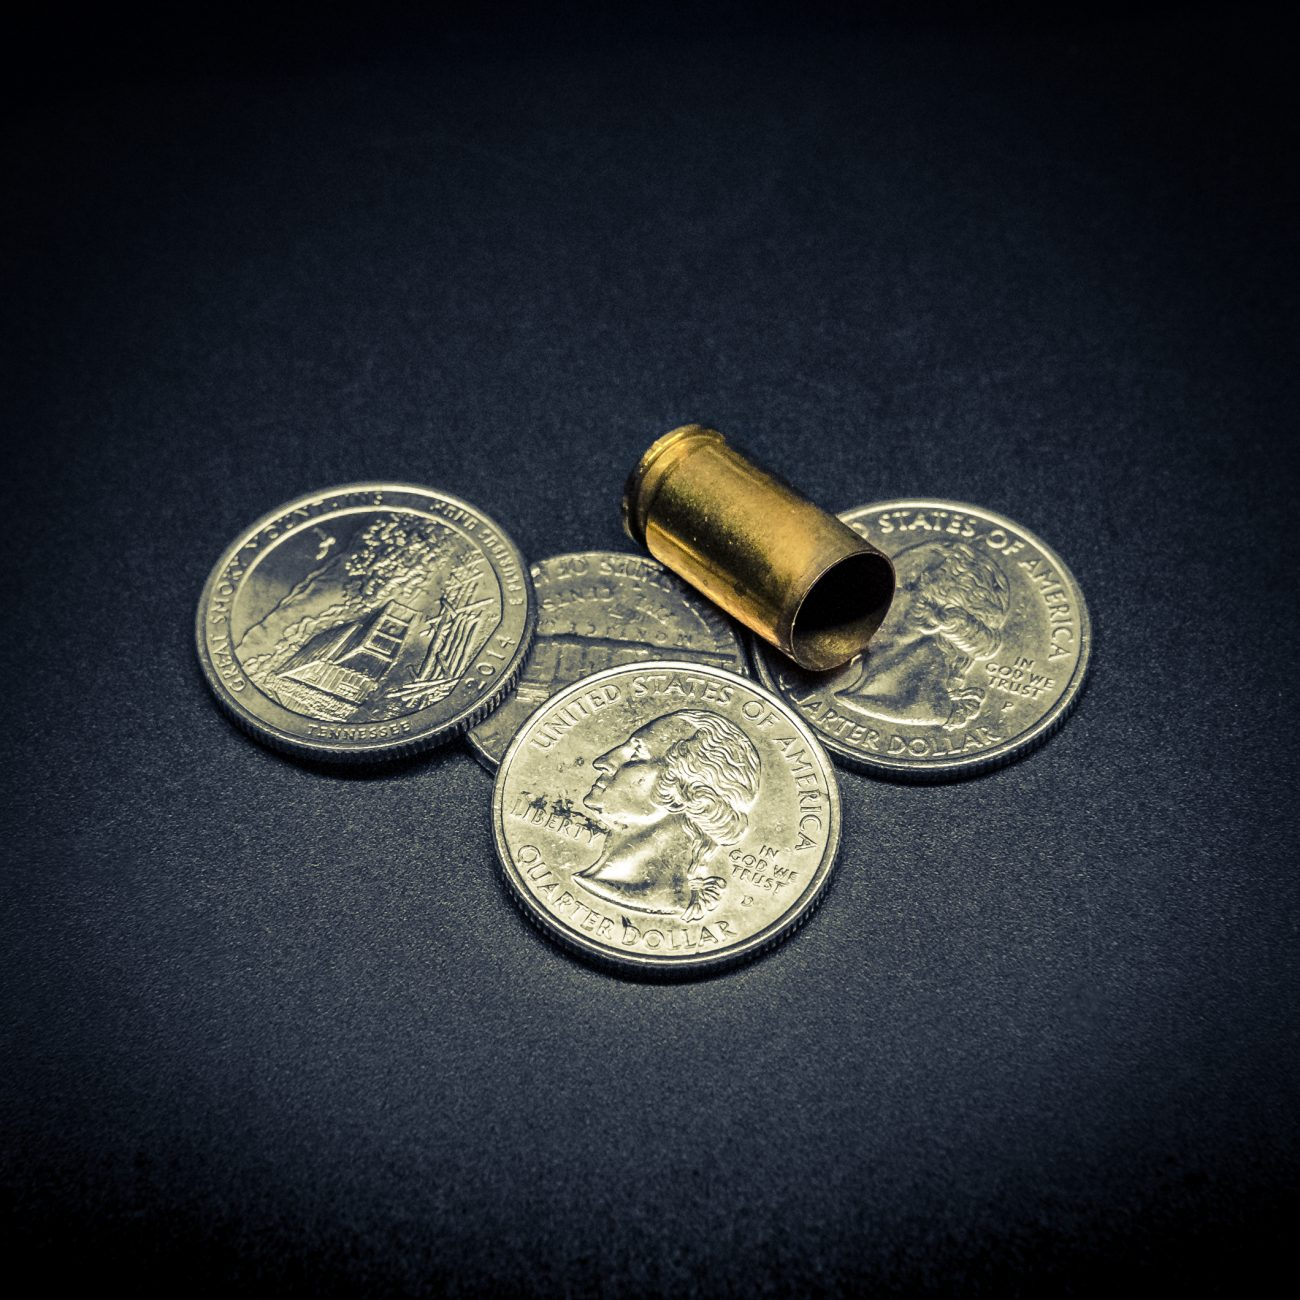 Duo-toned image of small change and a spent 9mm shell casing